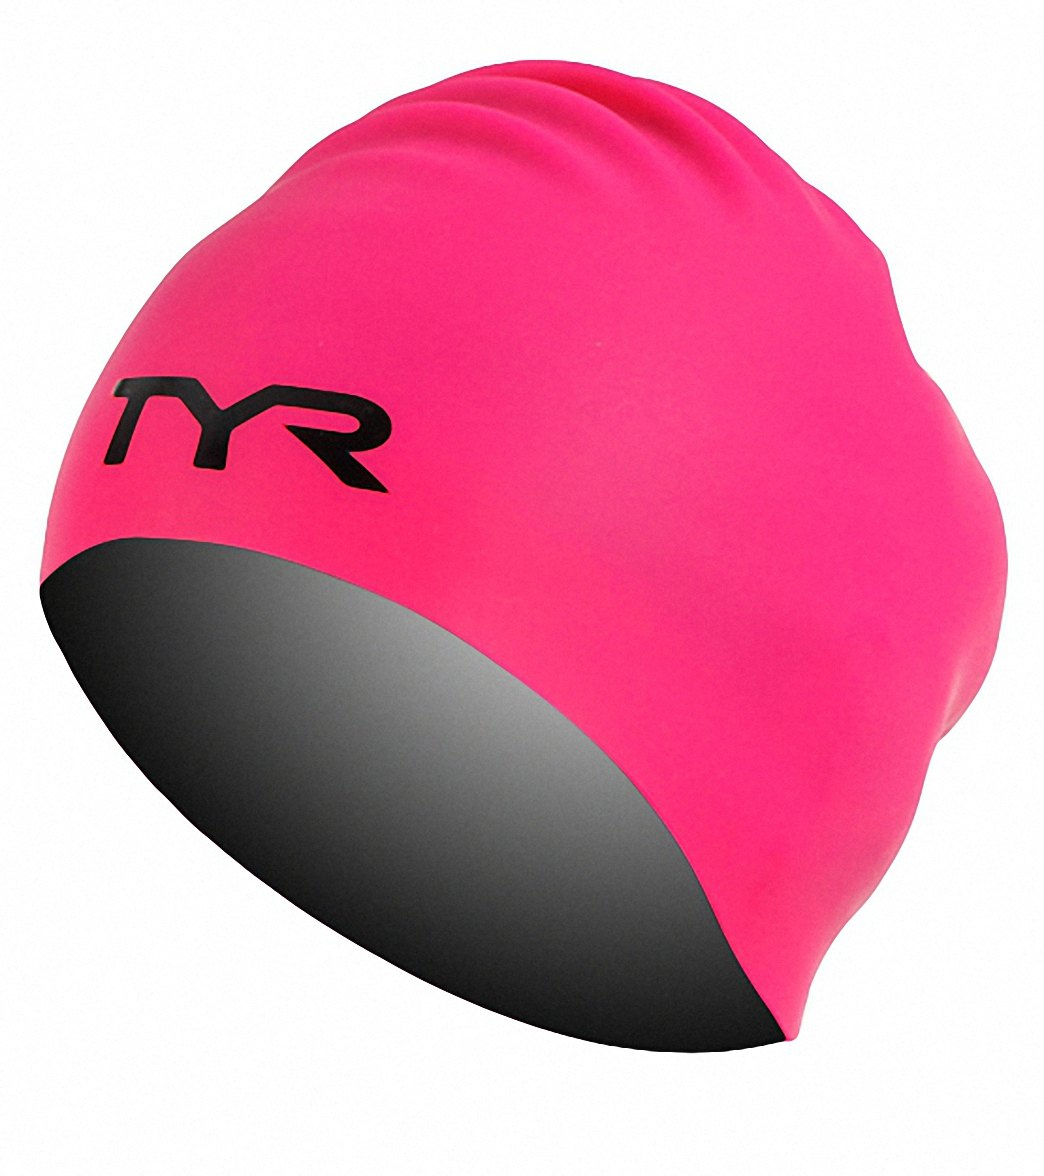 TYR Long Hair Wrinkle Free Silicone Swim Cap at SwimOutlet.com 65fa8101f